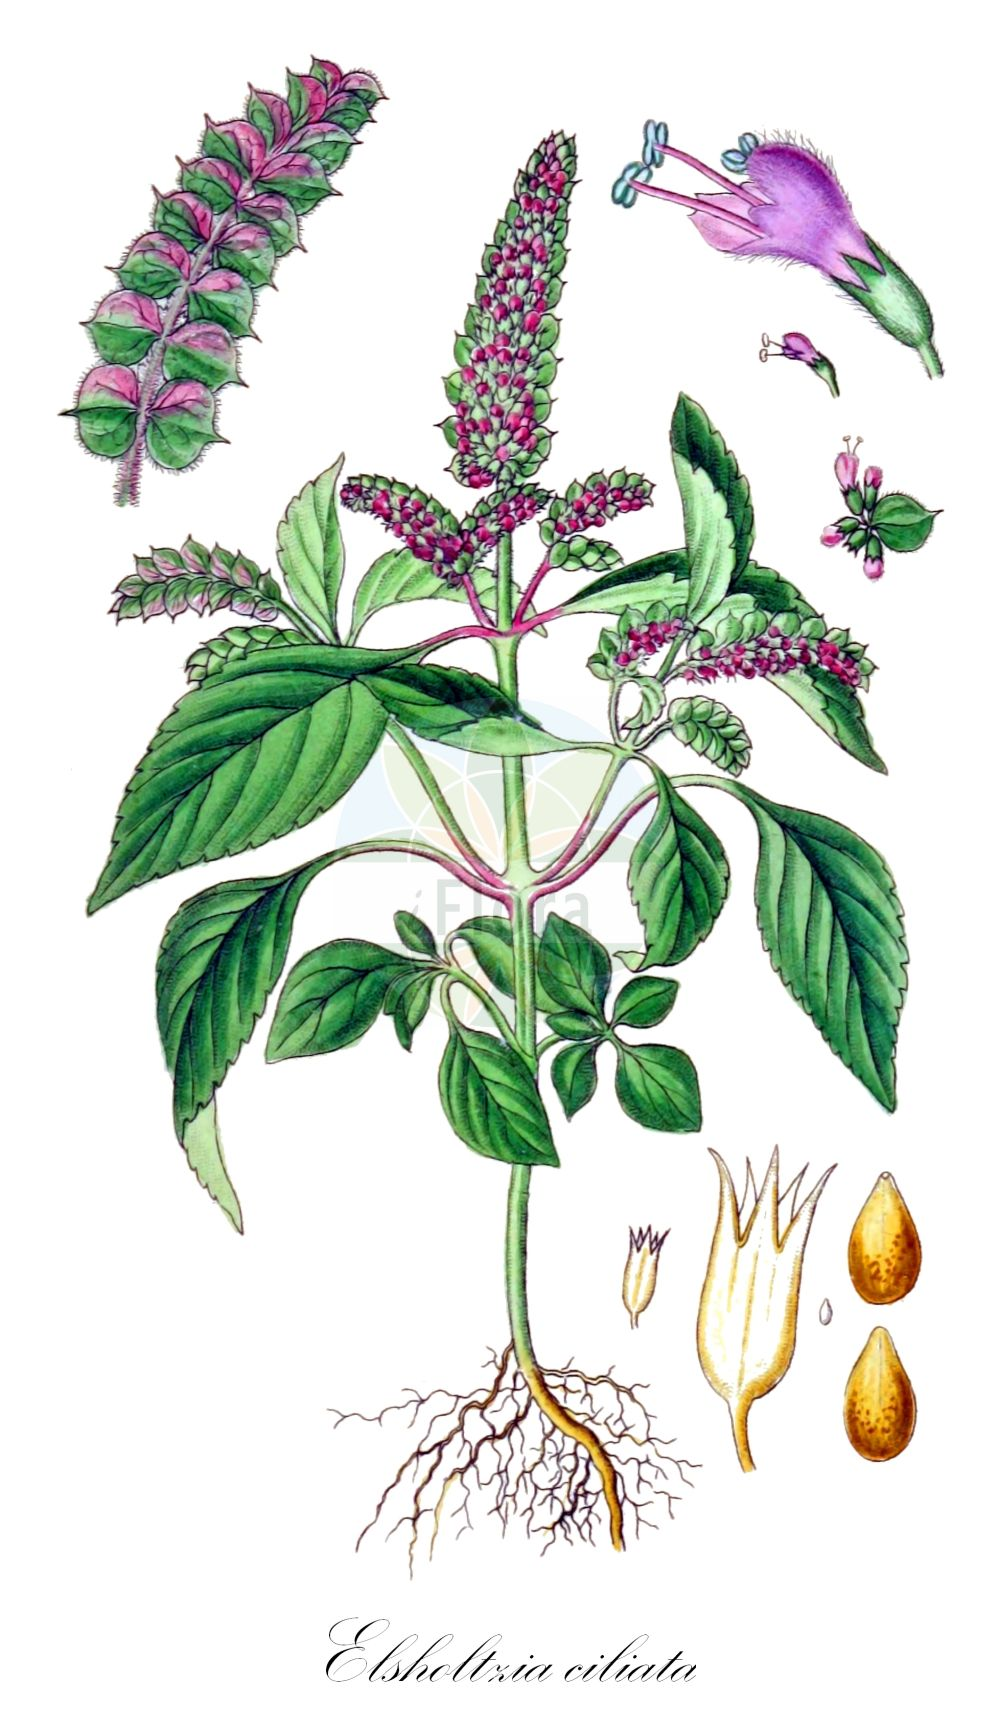 Historische Abbildung von Elsholtzia ciliata. Das Bild zeigt Blatt, Bluete, Frucht und Same. ---- Historical Drawing of Elsholtzia ciliata.The image is showing leaf, flower, fruit and seed.(Elsholtzia ciliata,Elsholtzia cristata,Elsholtzia formosana,Elsholtzia interrupta,Elsholtzia minima,Elsholtzia patrinii,Elsholtzia pseudocristata,Hyssopus bracteatus,Hyssopus ocymifolius,Mentha baikalensis,Mentha cristata,Mentha ovata,Mentha patrinii,Mentha perilloides,Perilla polystachya,Sideritis ciliata,Elsholtzia,Lamiaceae,Lippenbluetengewaechse;Lippenbluetler,Nettle family,Blatt,Bluete,Frucht,Same,leaf,flower,fruit,seed,Sturm (1796f))